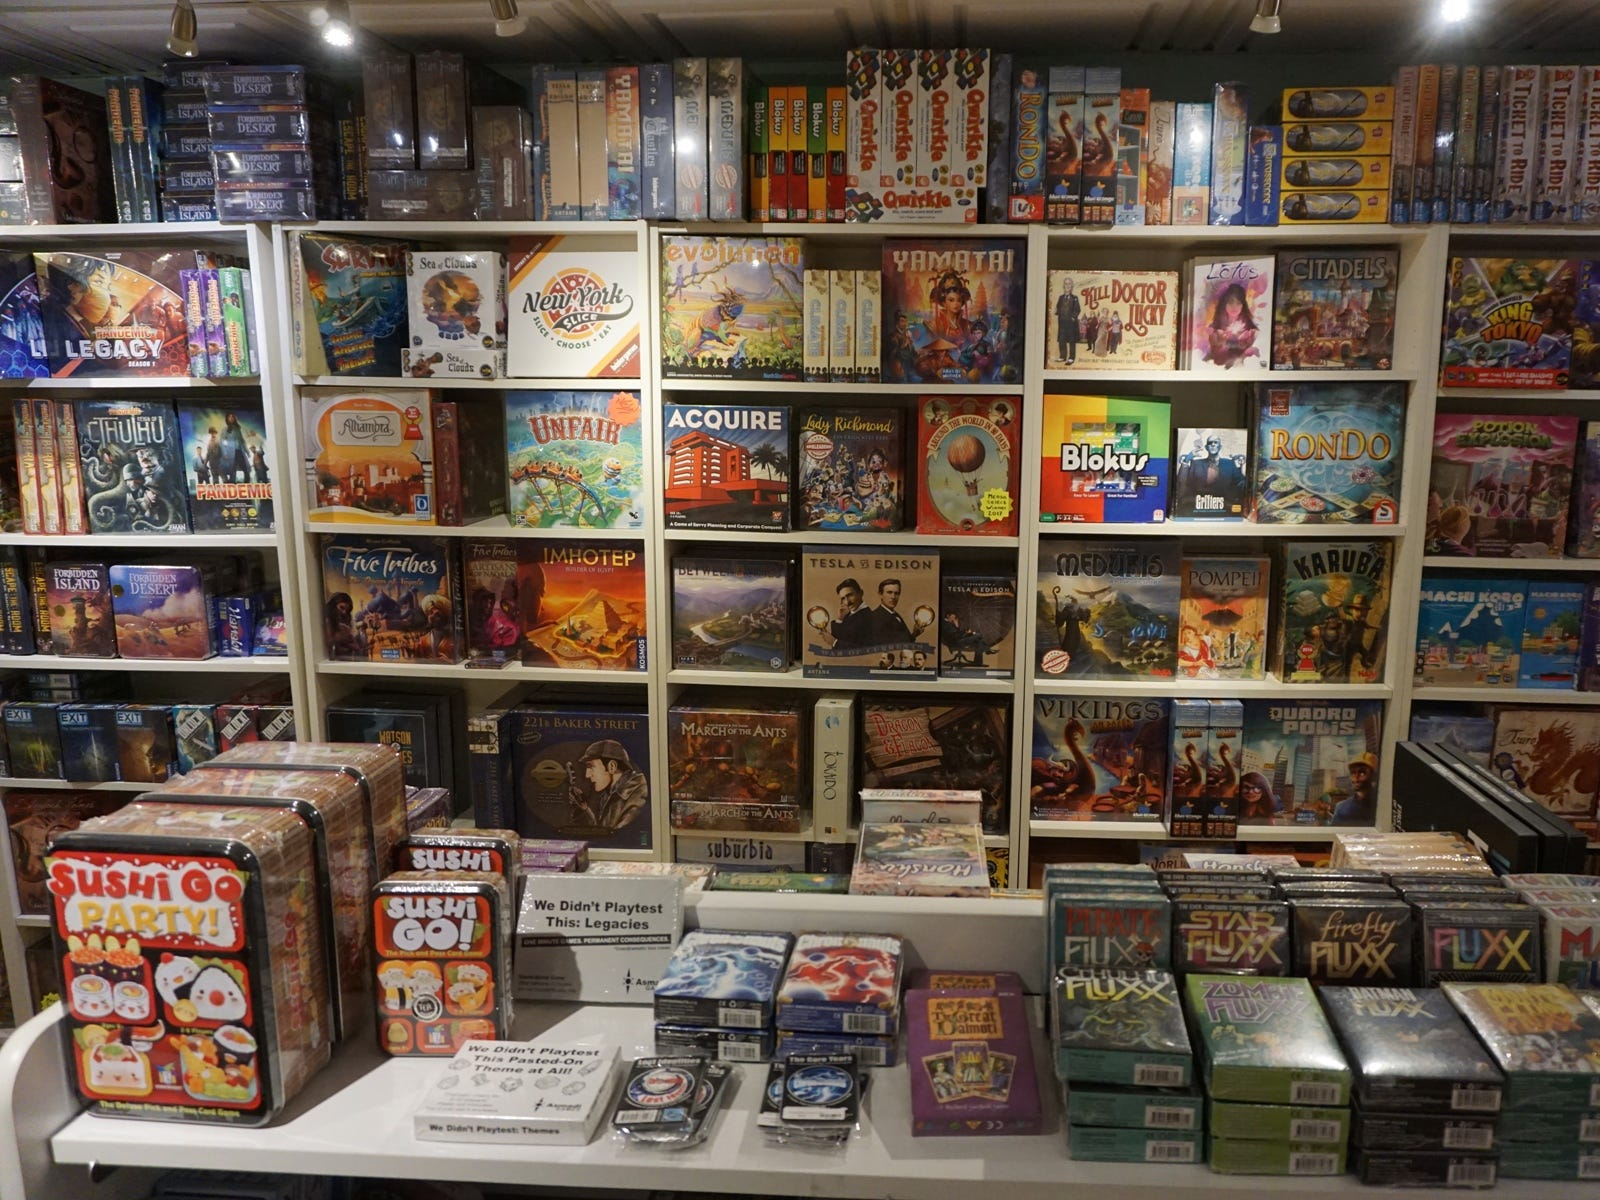 It's easy to get lost in the world of fantasy and role-playing at Labyrinth Games & Puzzles in Washington, D.C. Not only does it stock an ample inventory of games and supplies, but the shop also hosts a ton of events, tournaments and workshops.